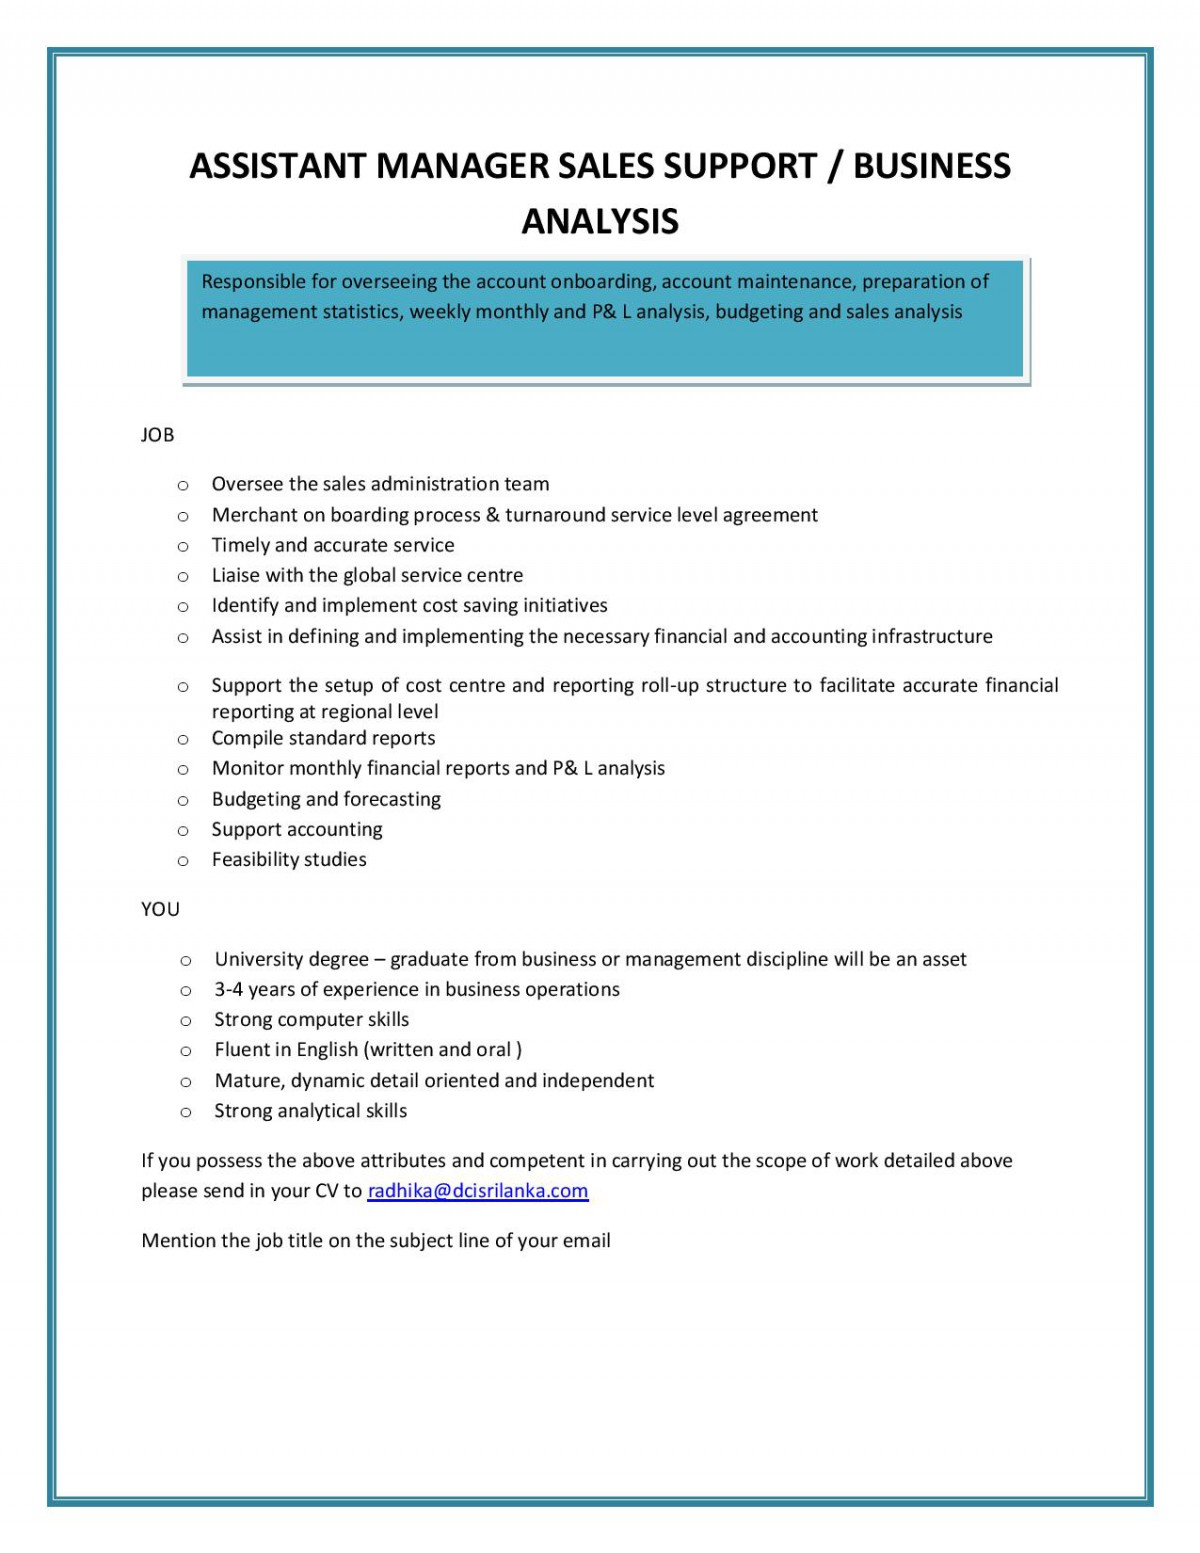 Job analysis assistant store managers at Homework Example